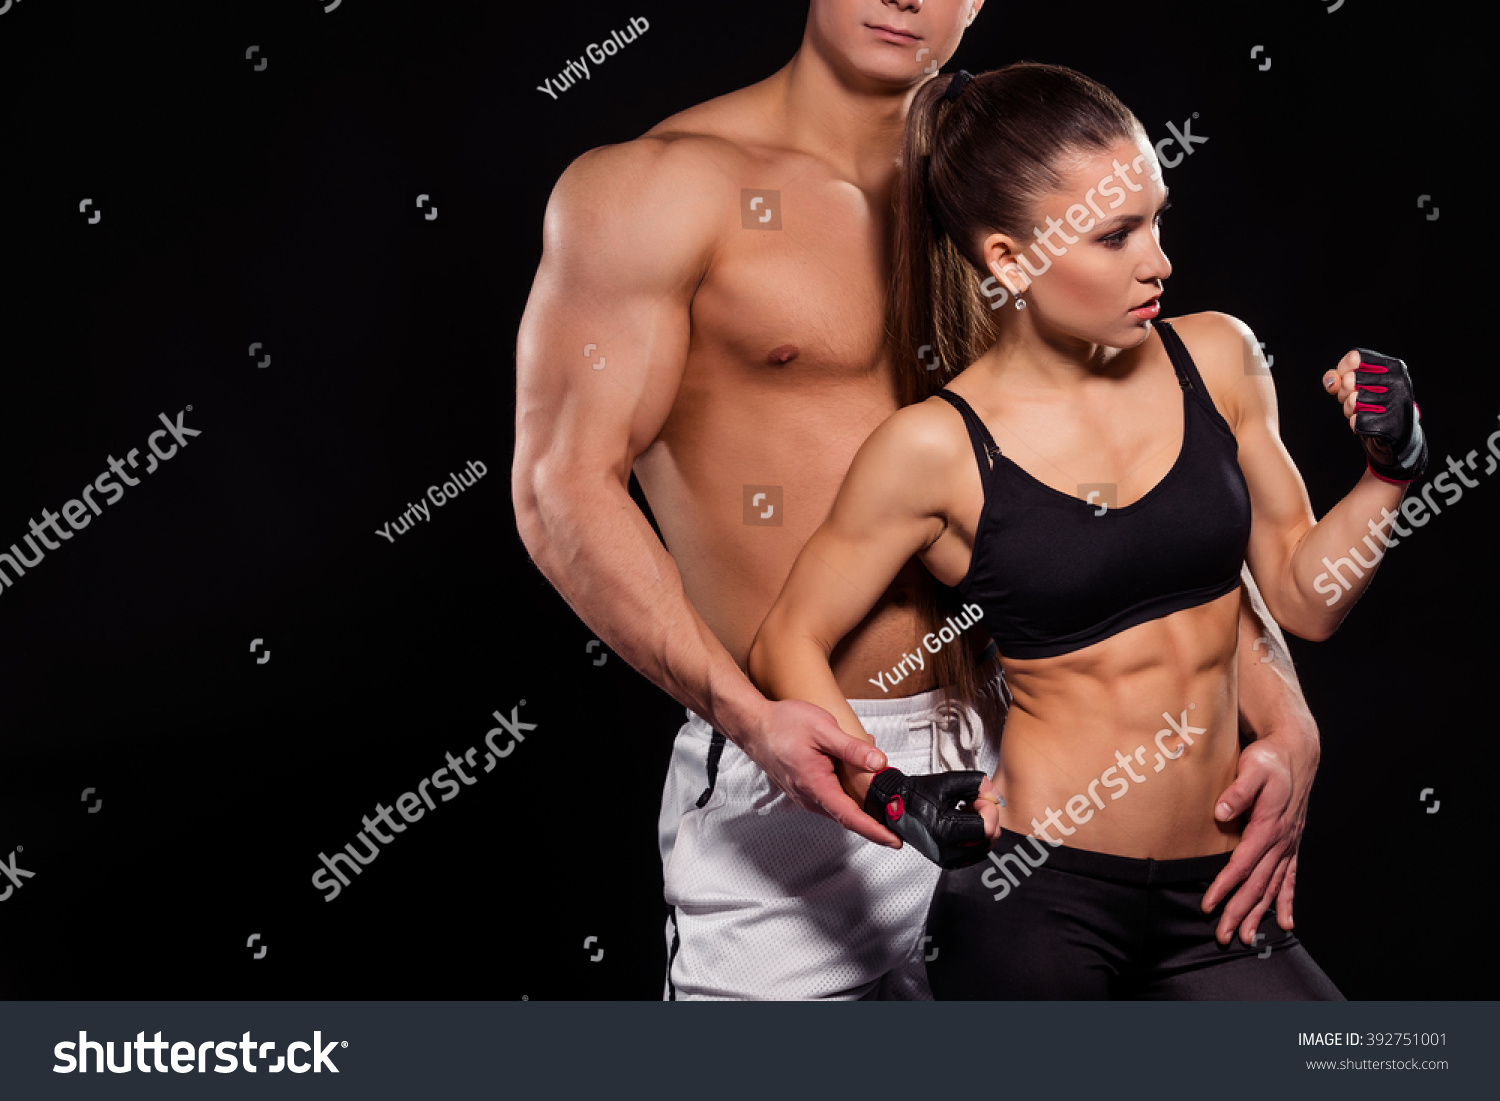 Bodybuilder touches girl flexing bicep. Girl flexing arm near guy. Learning  how to pose